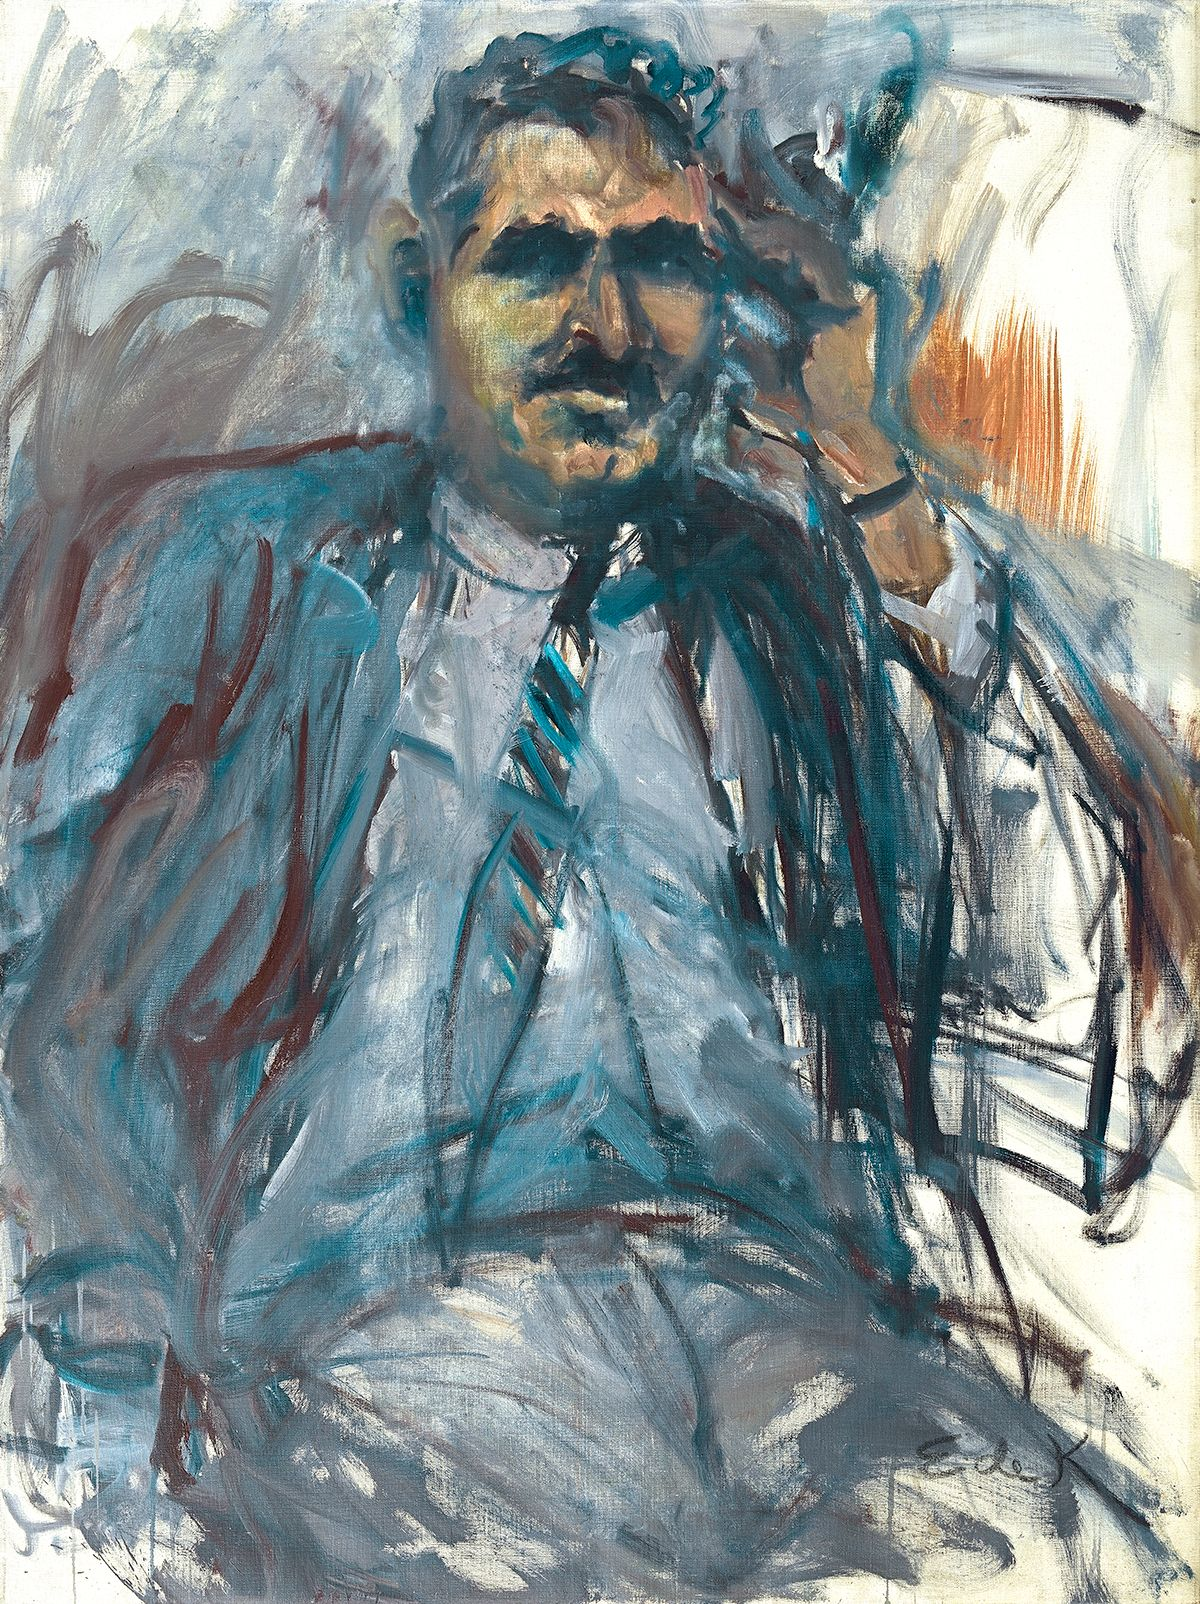 Elaine de Kooning, Harold Rosenberg #2, 1967 oil on canvas 48 1/4 x 36 inches